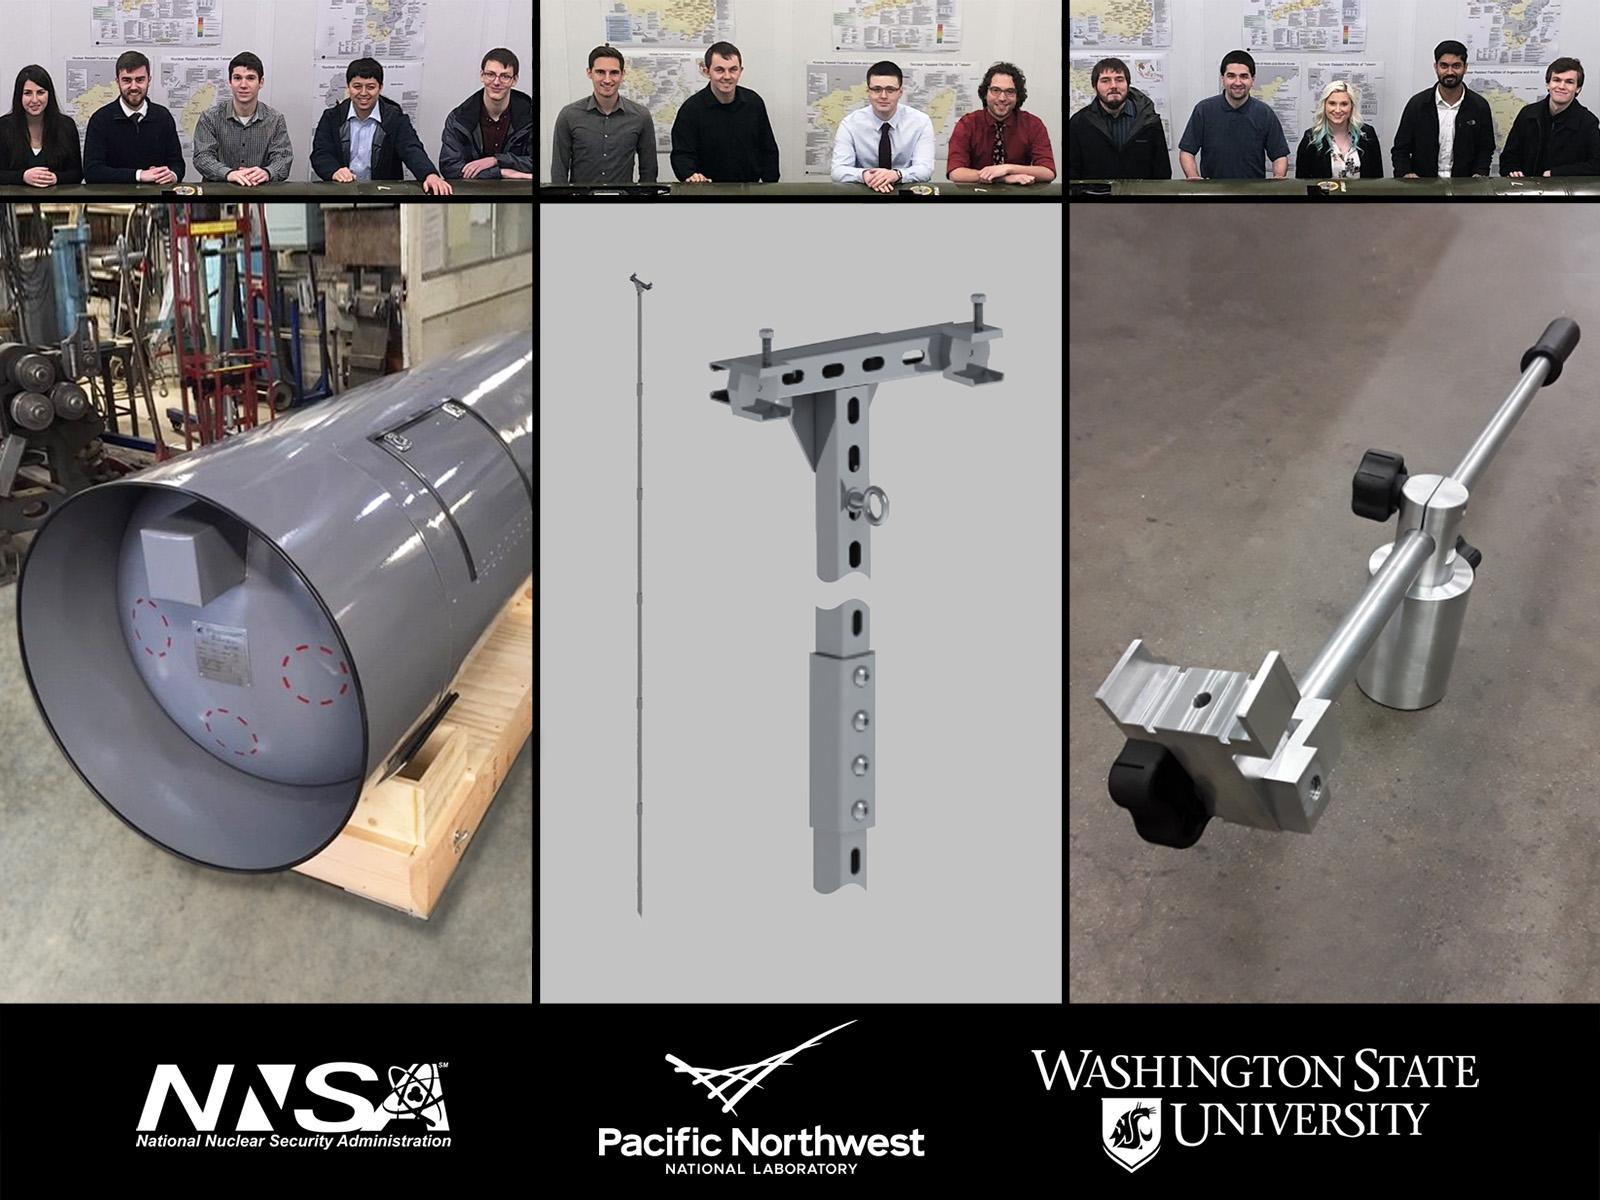 WSU engineering student teams and their prototype equipment